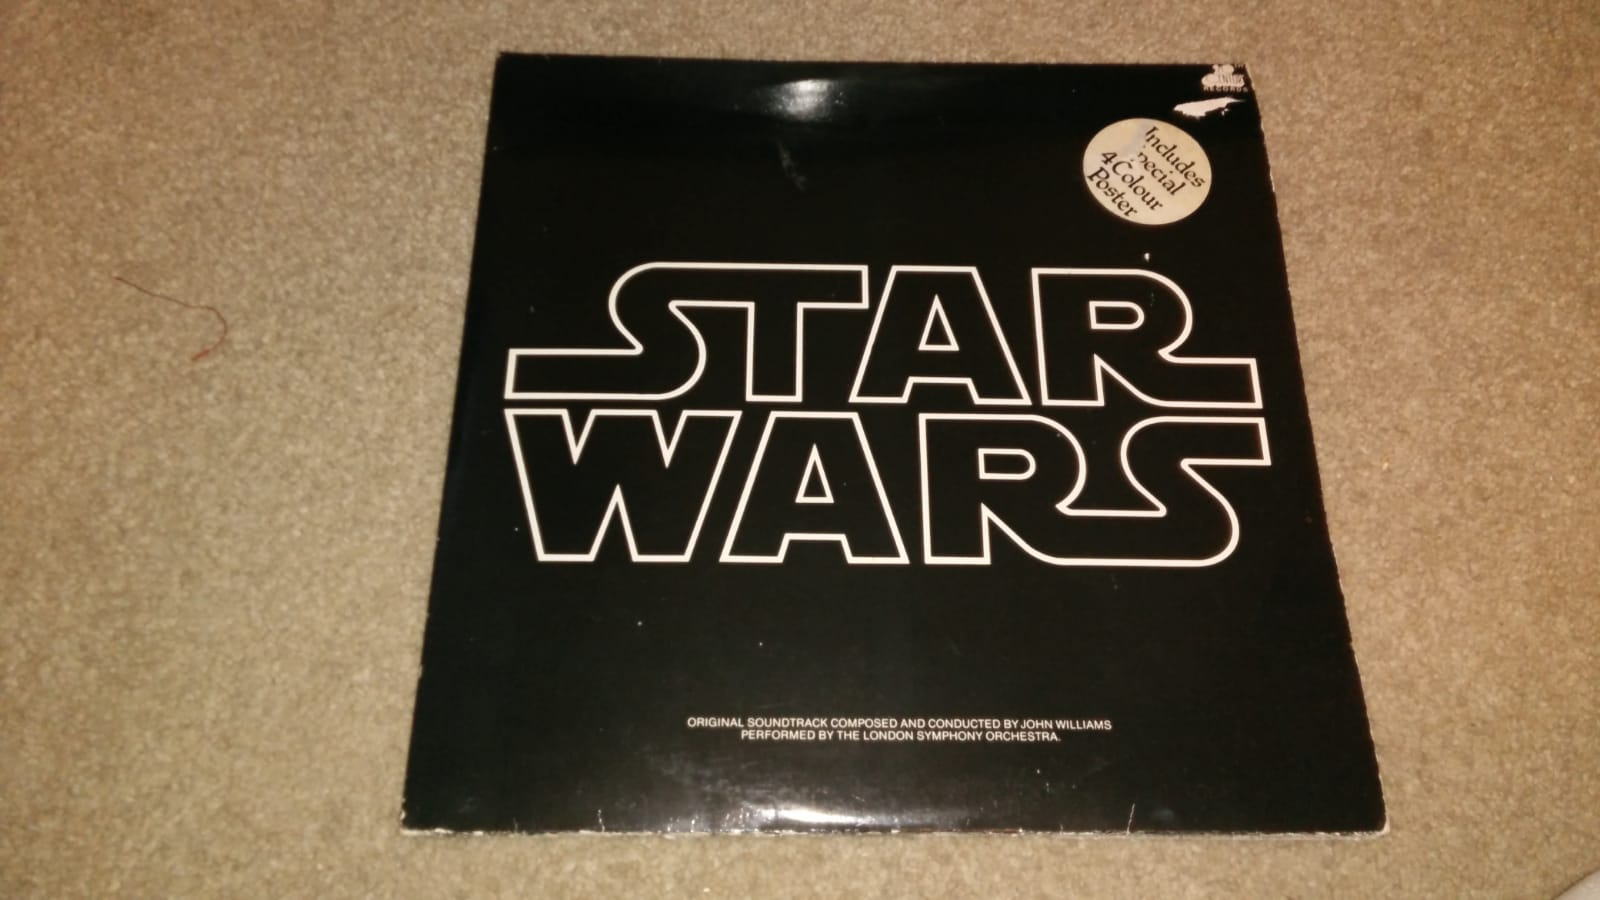 My mate just bought this 1977 vinyl from a charity shop